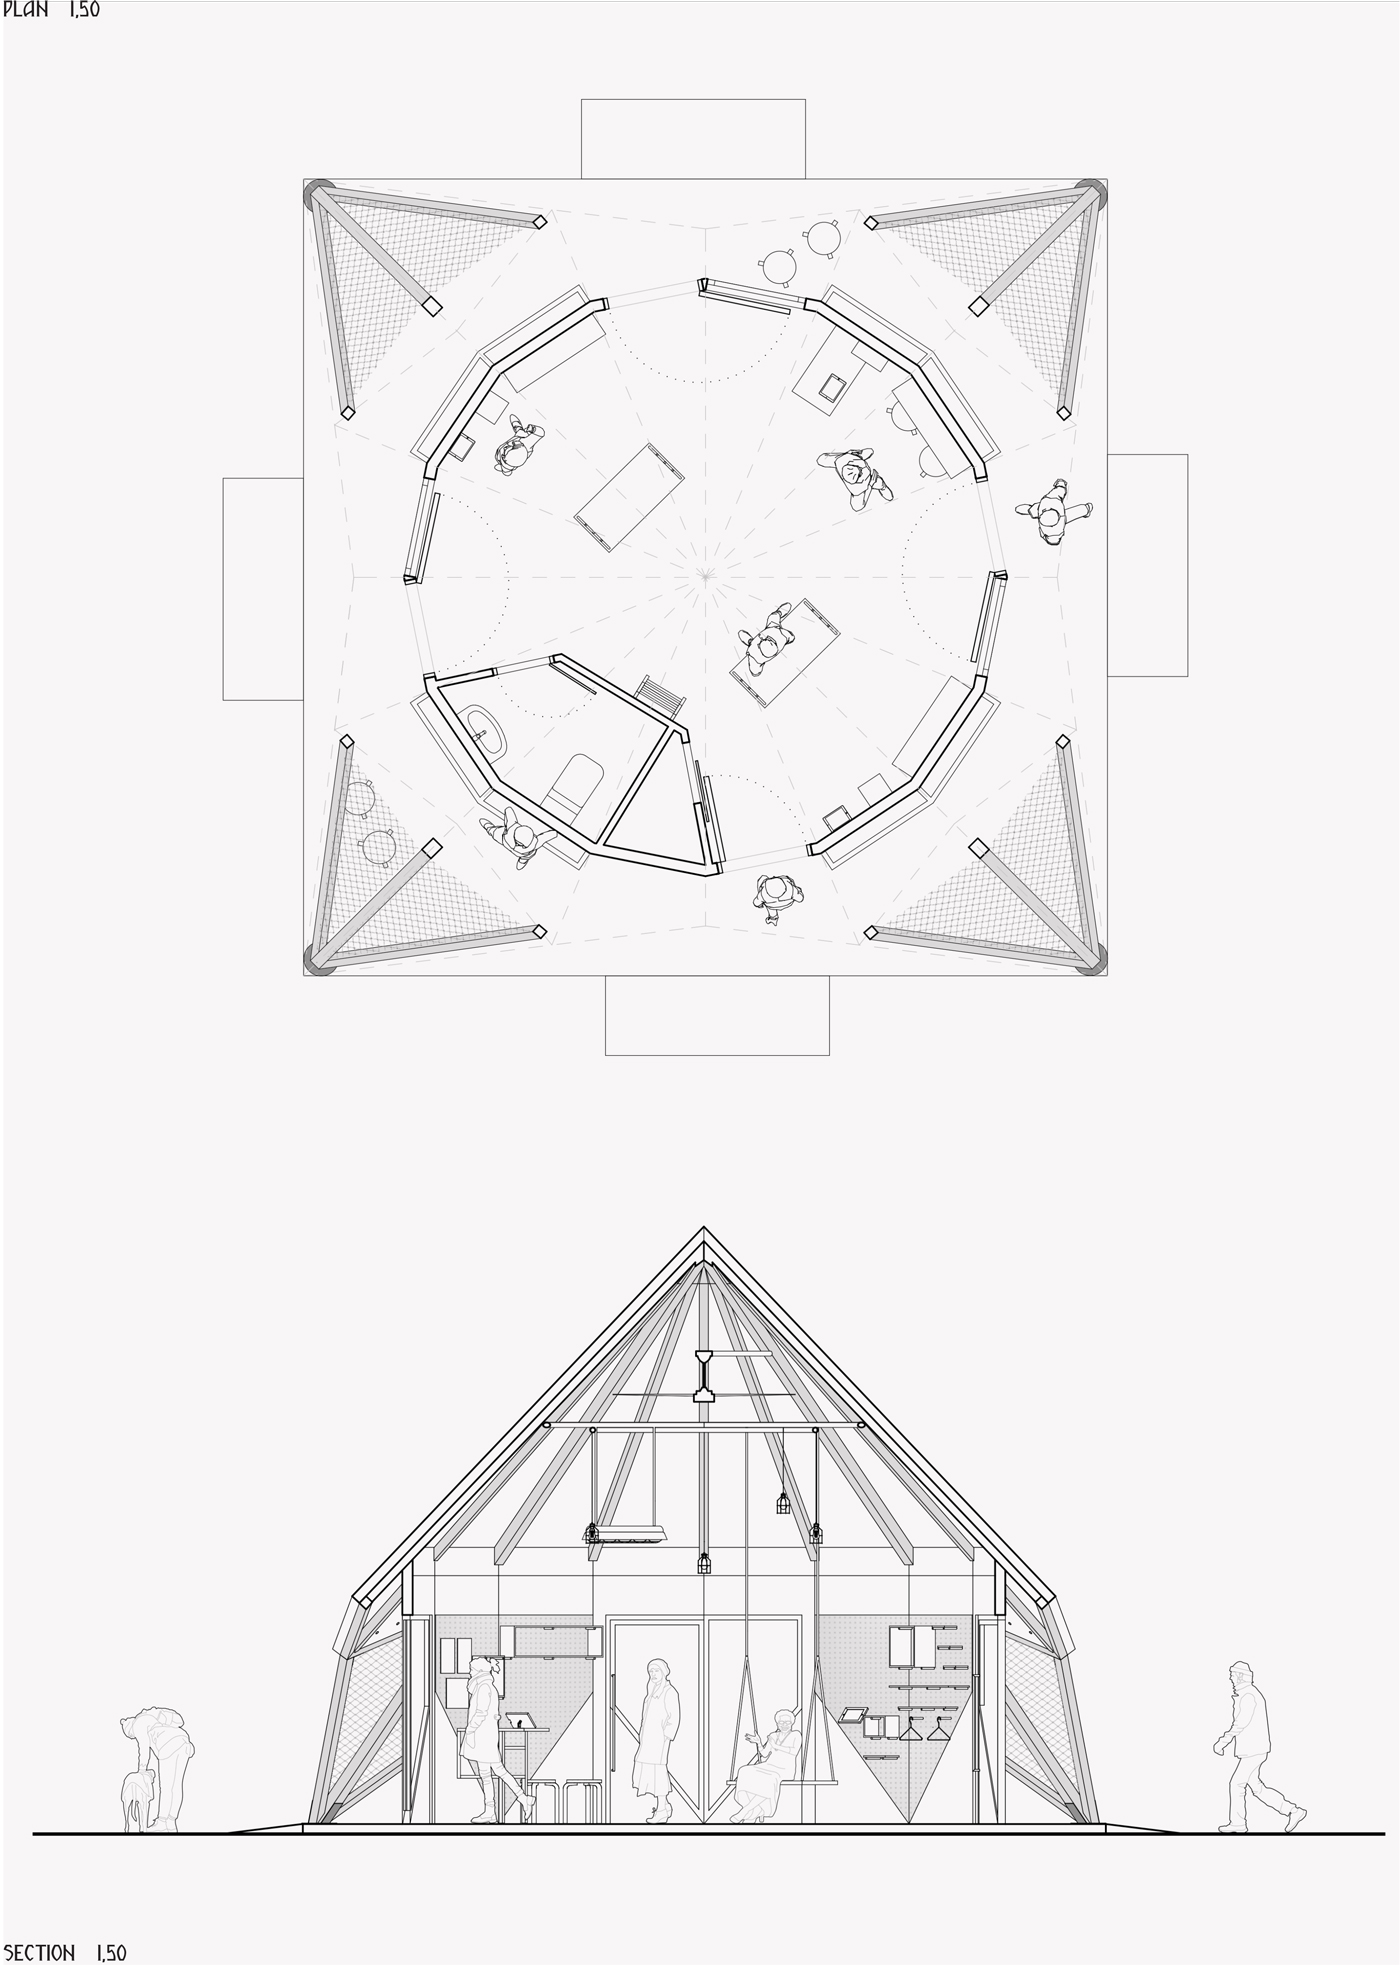 003_Floor-Plan-and-Section.jpg